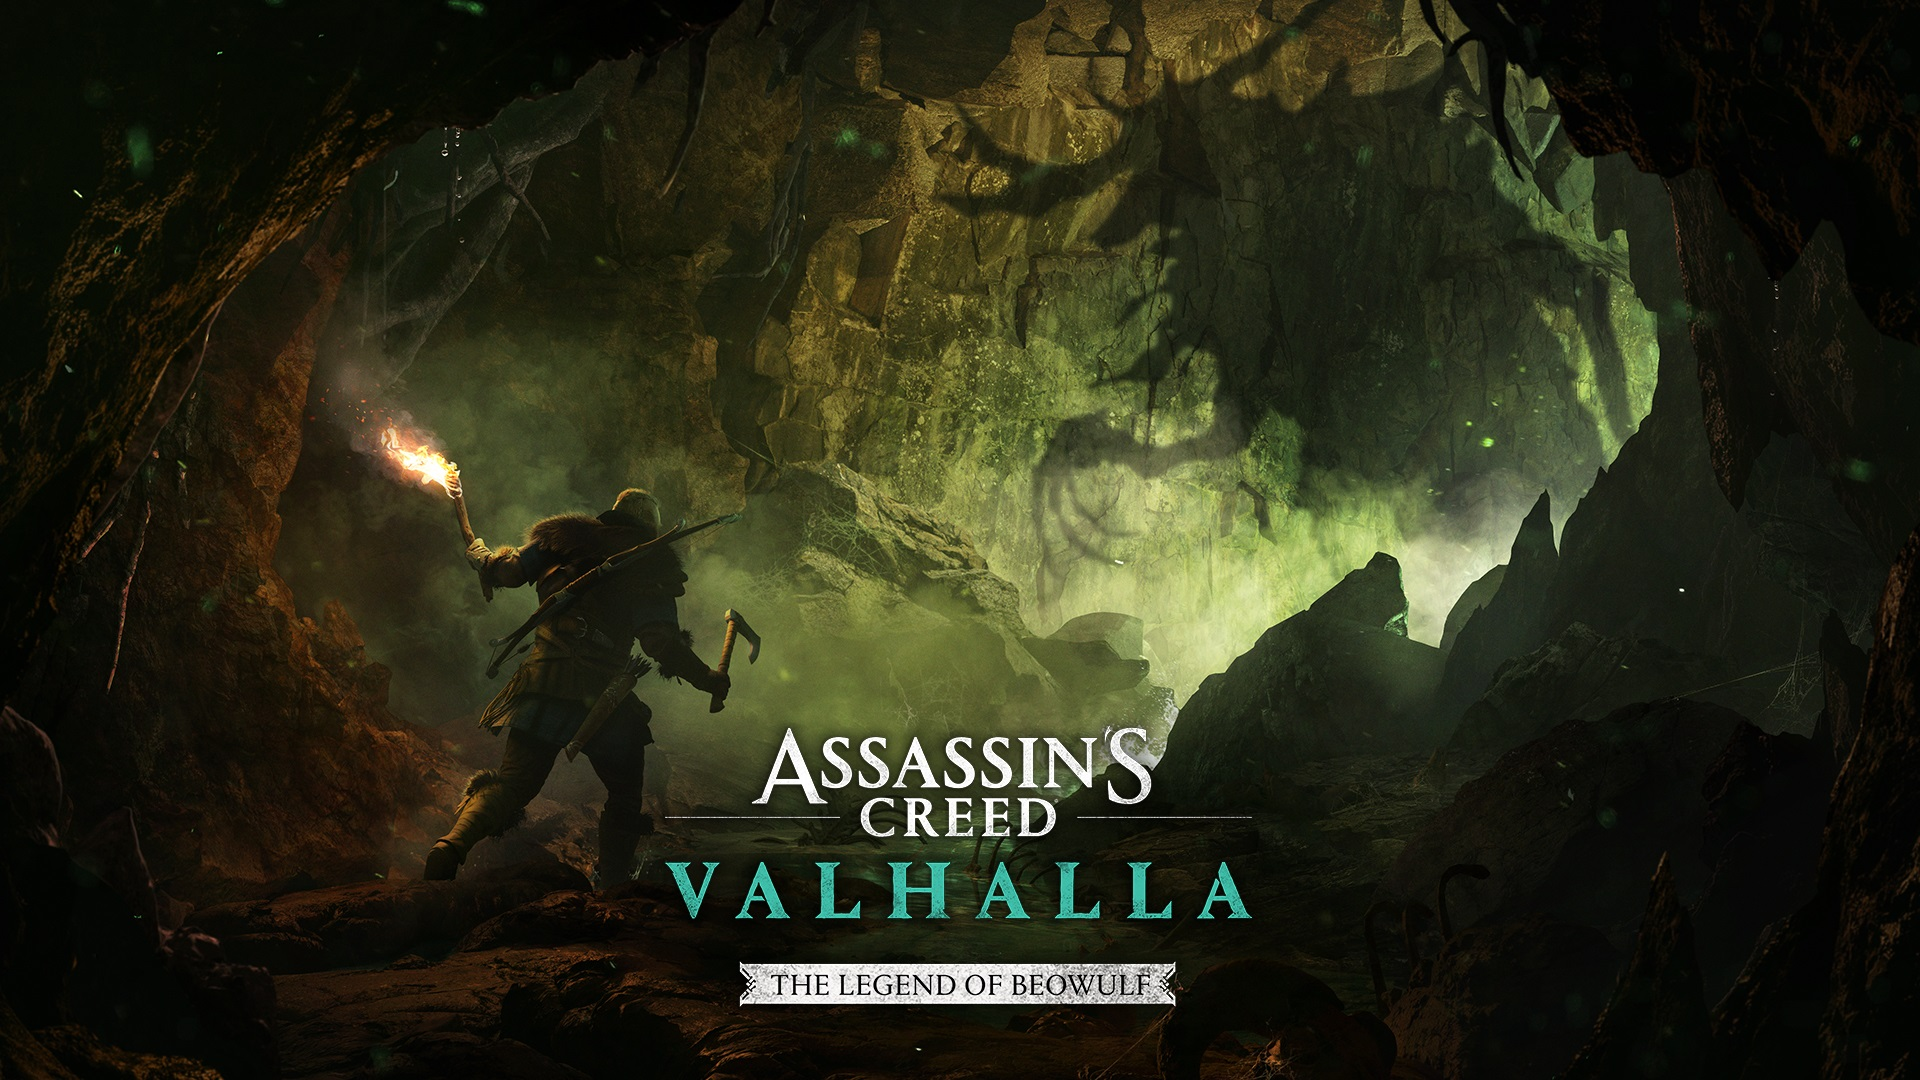 Assassin S Creed Valhalla S Story Expansions Will Take Players To Ireland And France Vgc